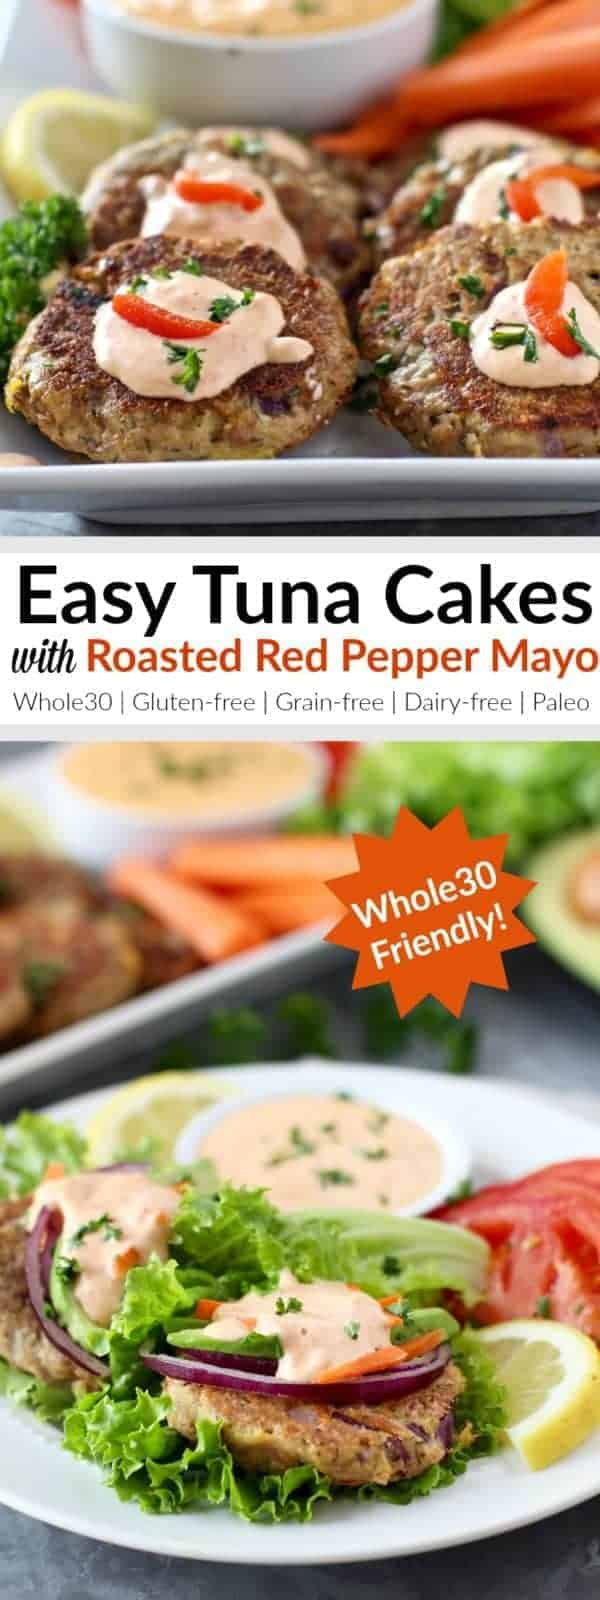 Put food on the table in less than 30 minutes with these Whole30-friendly, Easy Tuna Cakes that are topped with a 3-ingredient Roasted Red Pepper Mayo. A recipe that's fast, healthy and delicious and one that everyone will love! | Whole30 | Paleo | Grain-free | Gluten-free | Dairy-free | https://therealfoodrds.com/easy-tuna-cakes/